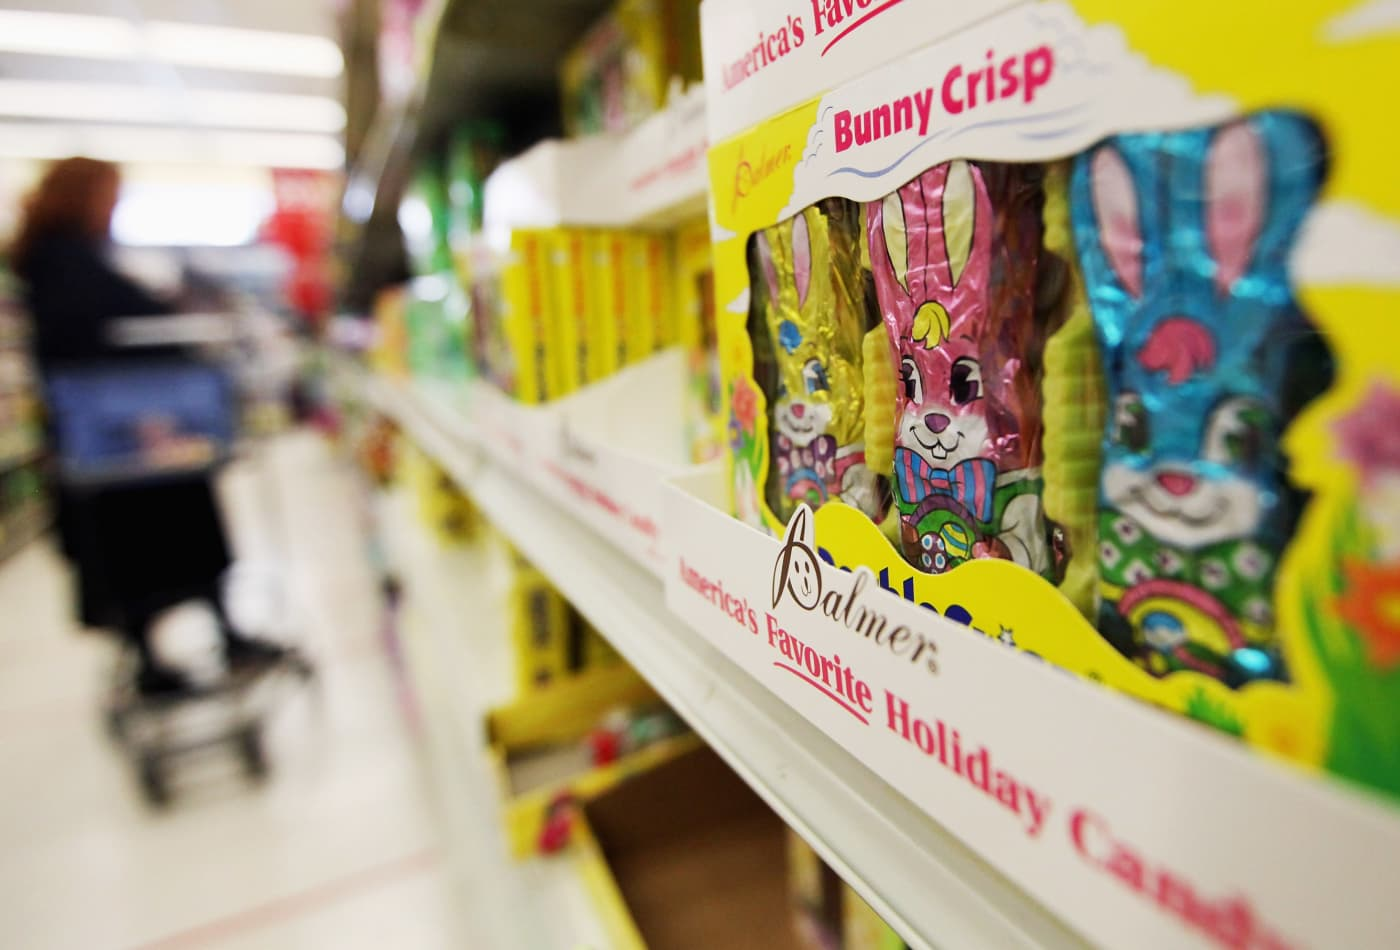 Parents look to create a 'magical' Easter, as coronavirus changes the holiday celebration